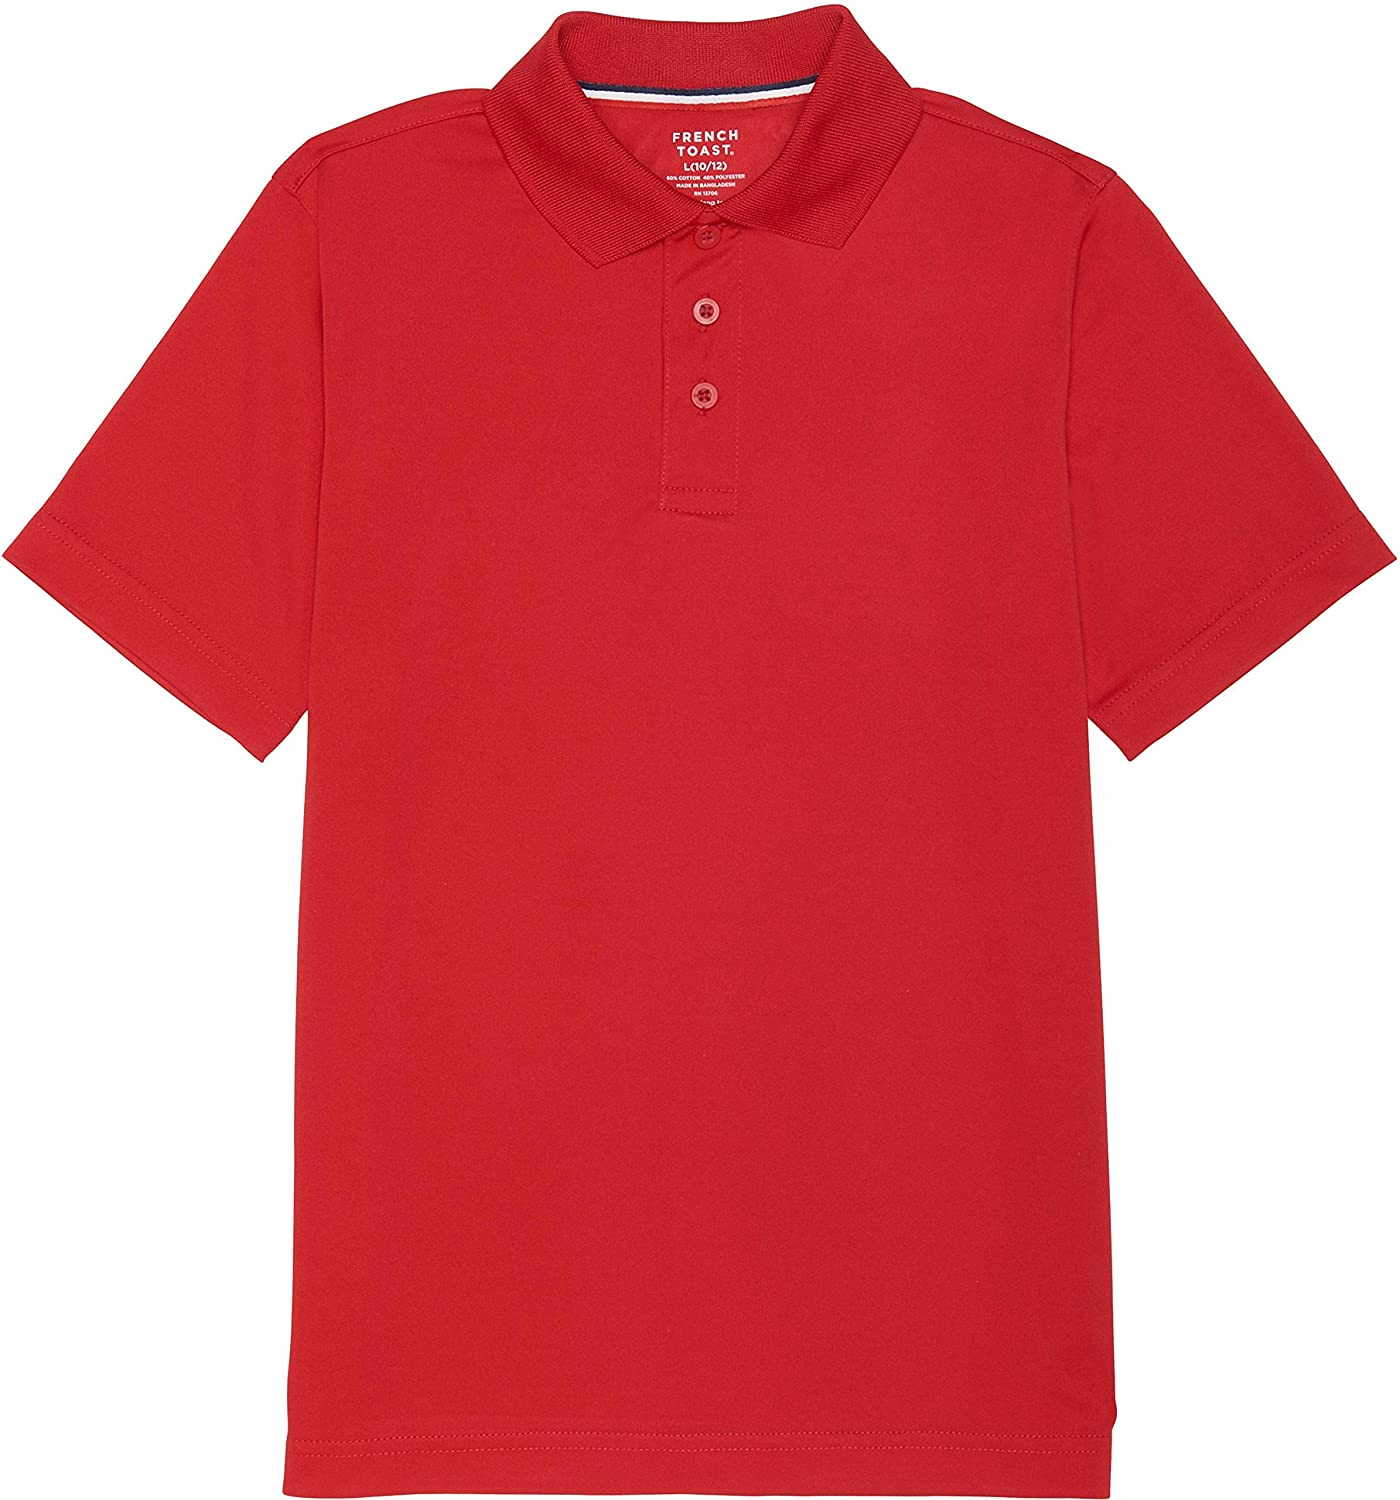 French Toast School Uniform Boys Short Sleeve Sport Polo Shirt Red X-Small (4/5)